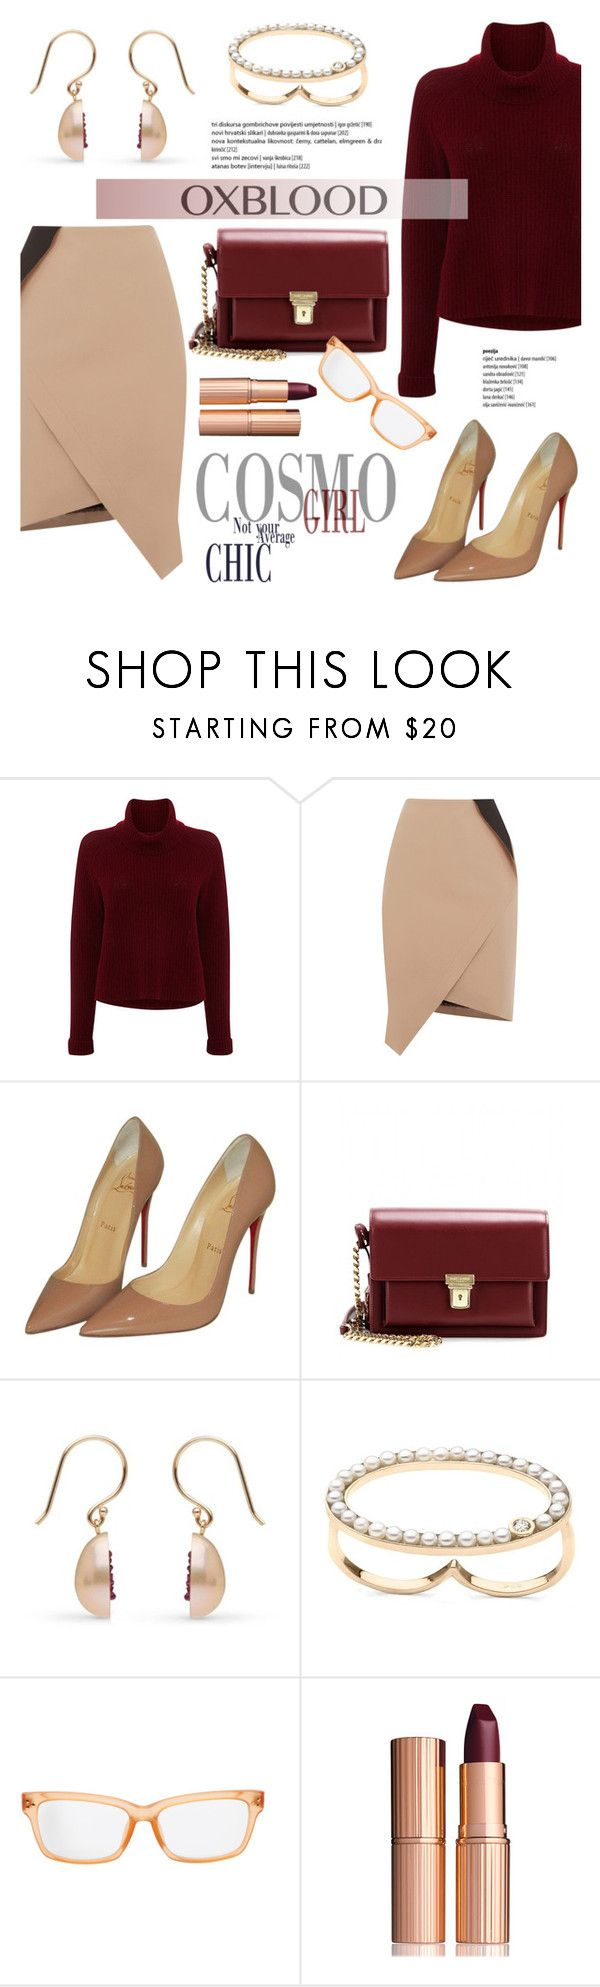 """""""Hot Color Trend: Oxblood"""" by littlehjewelry ❤ liked on Polyvore featuring 360 Sweater, Oasis, Christian Louboutin, Yves Saint Laurent, Matthew Williamson, Charlotte Tilbury, oxblood, contestentry, pearljewelry and littlehjewelry"""